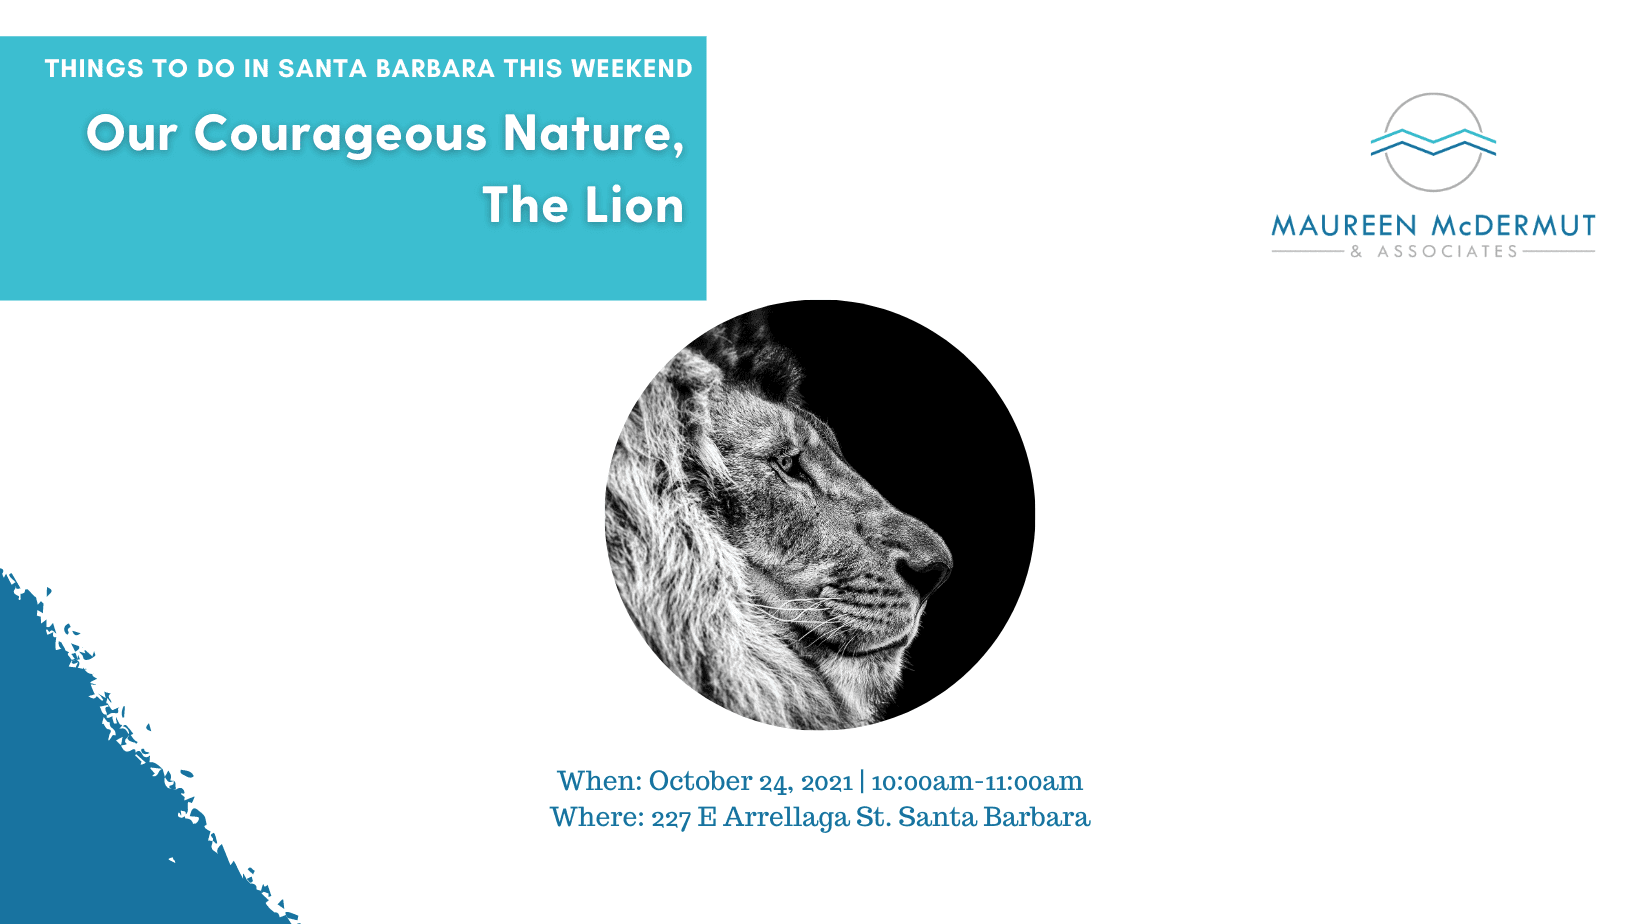 Our Courageous Nature, The Lion image